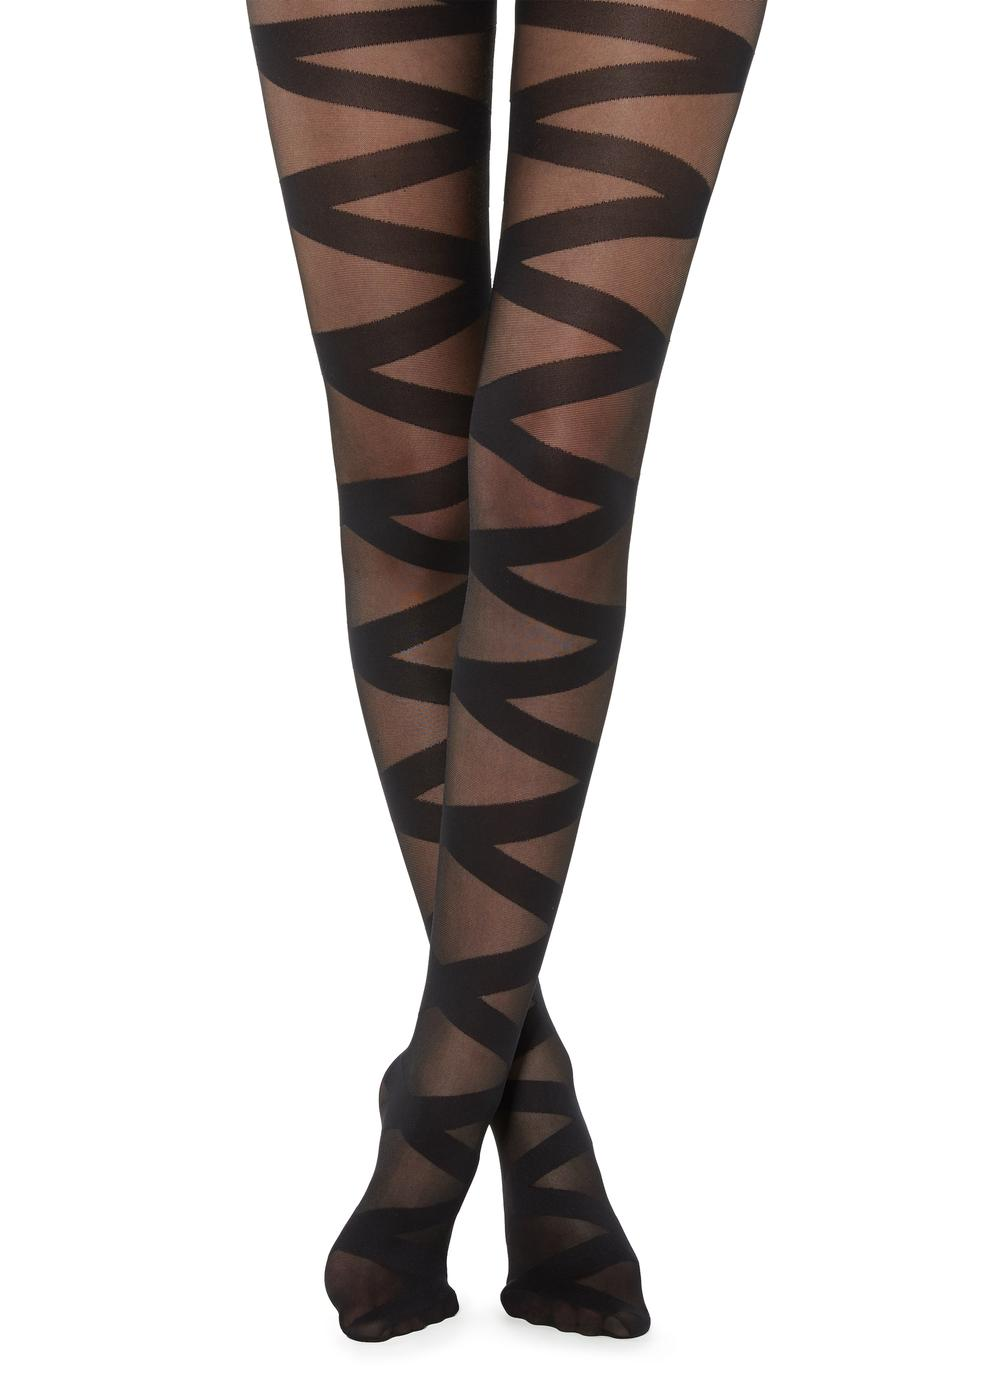 Crisscross sheer tights